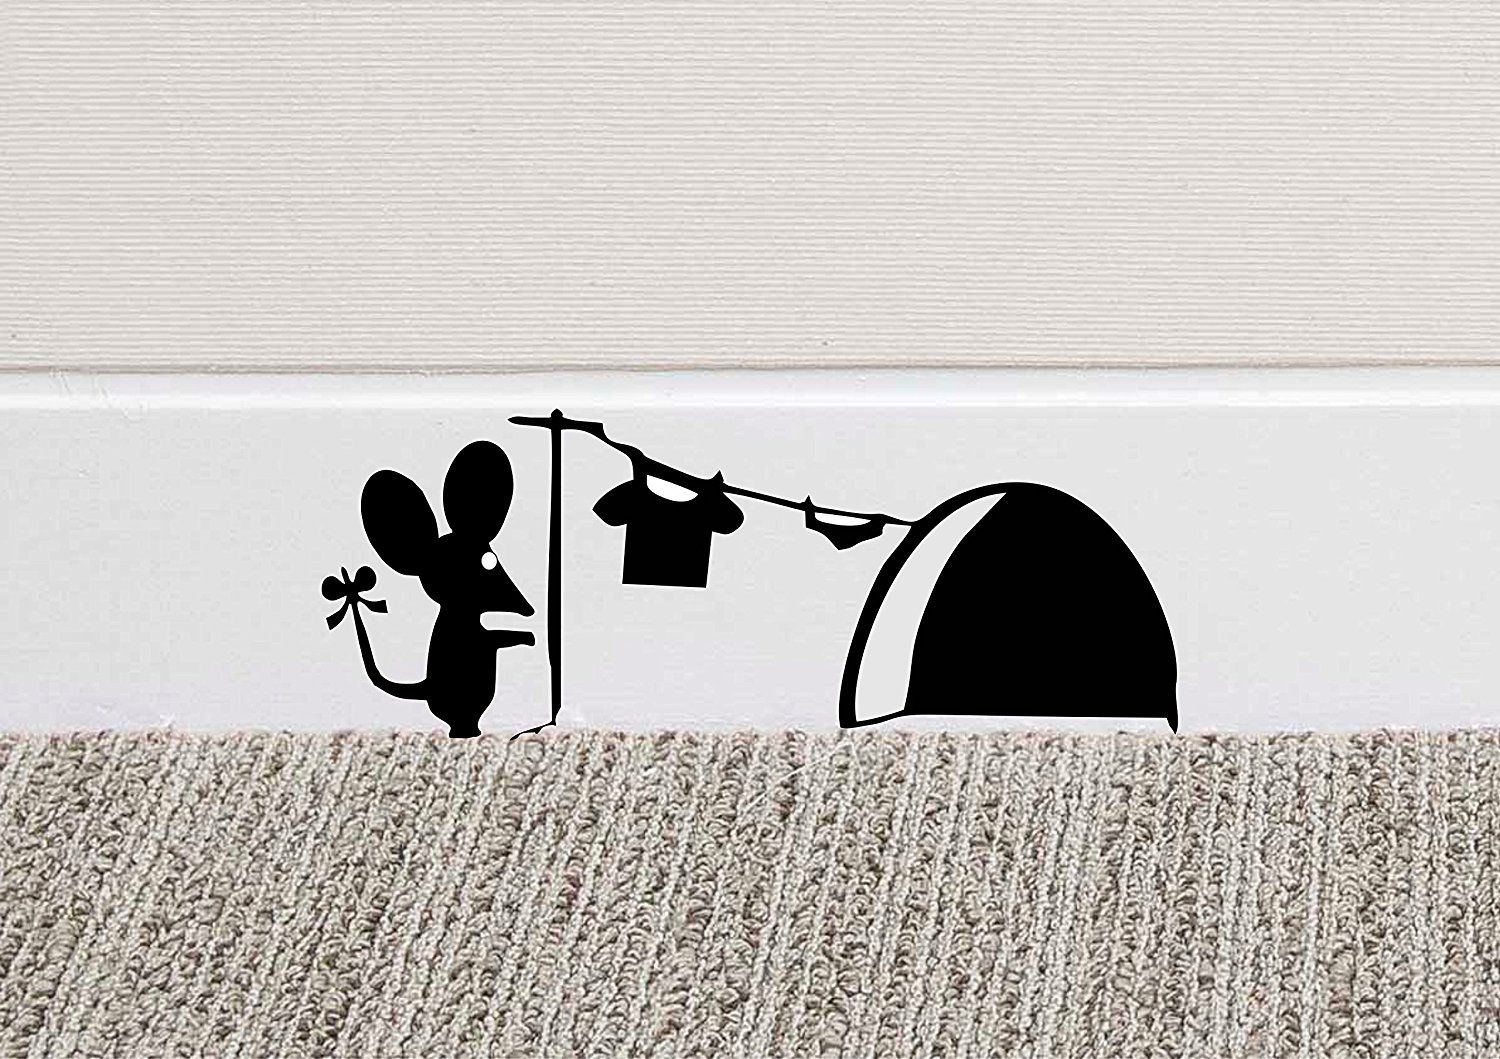 213B Mouse Hole Wall Art Sticker Washing Vinyl Decal Mice Home ...